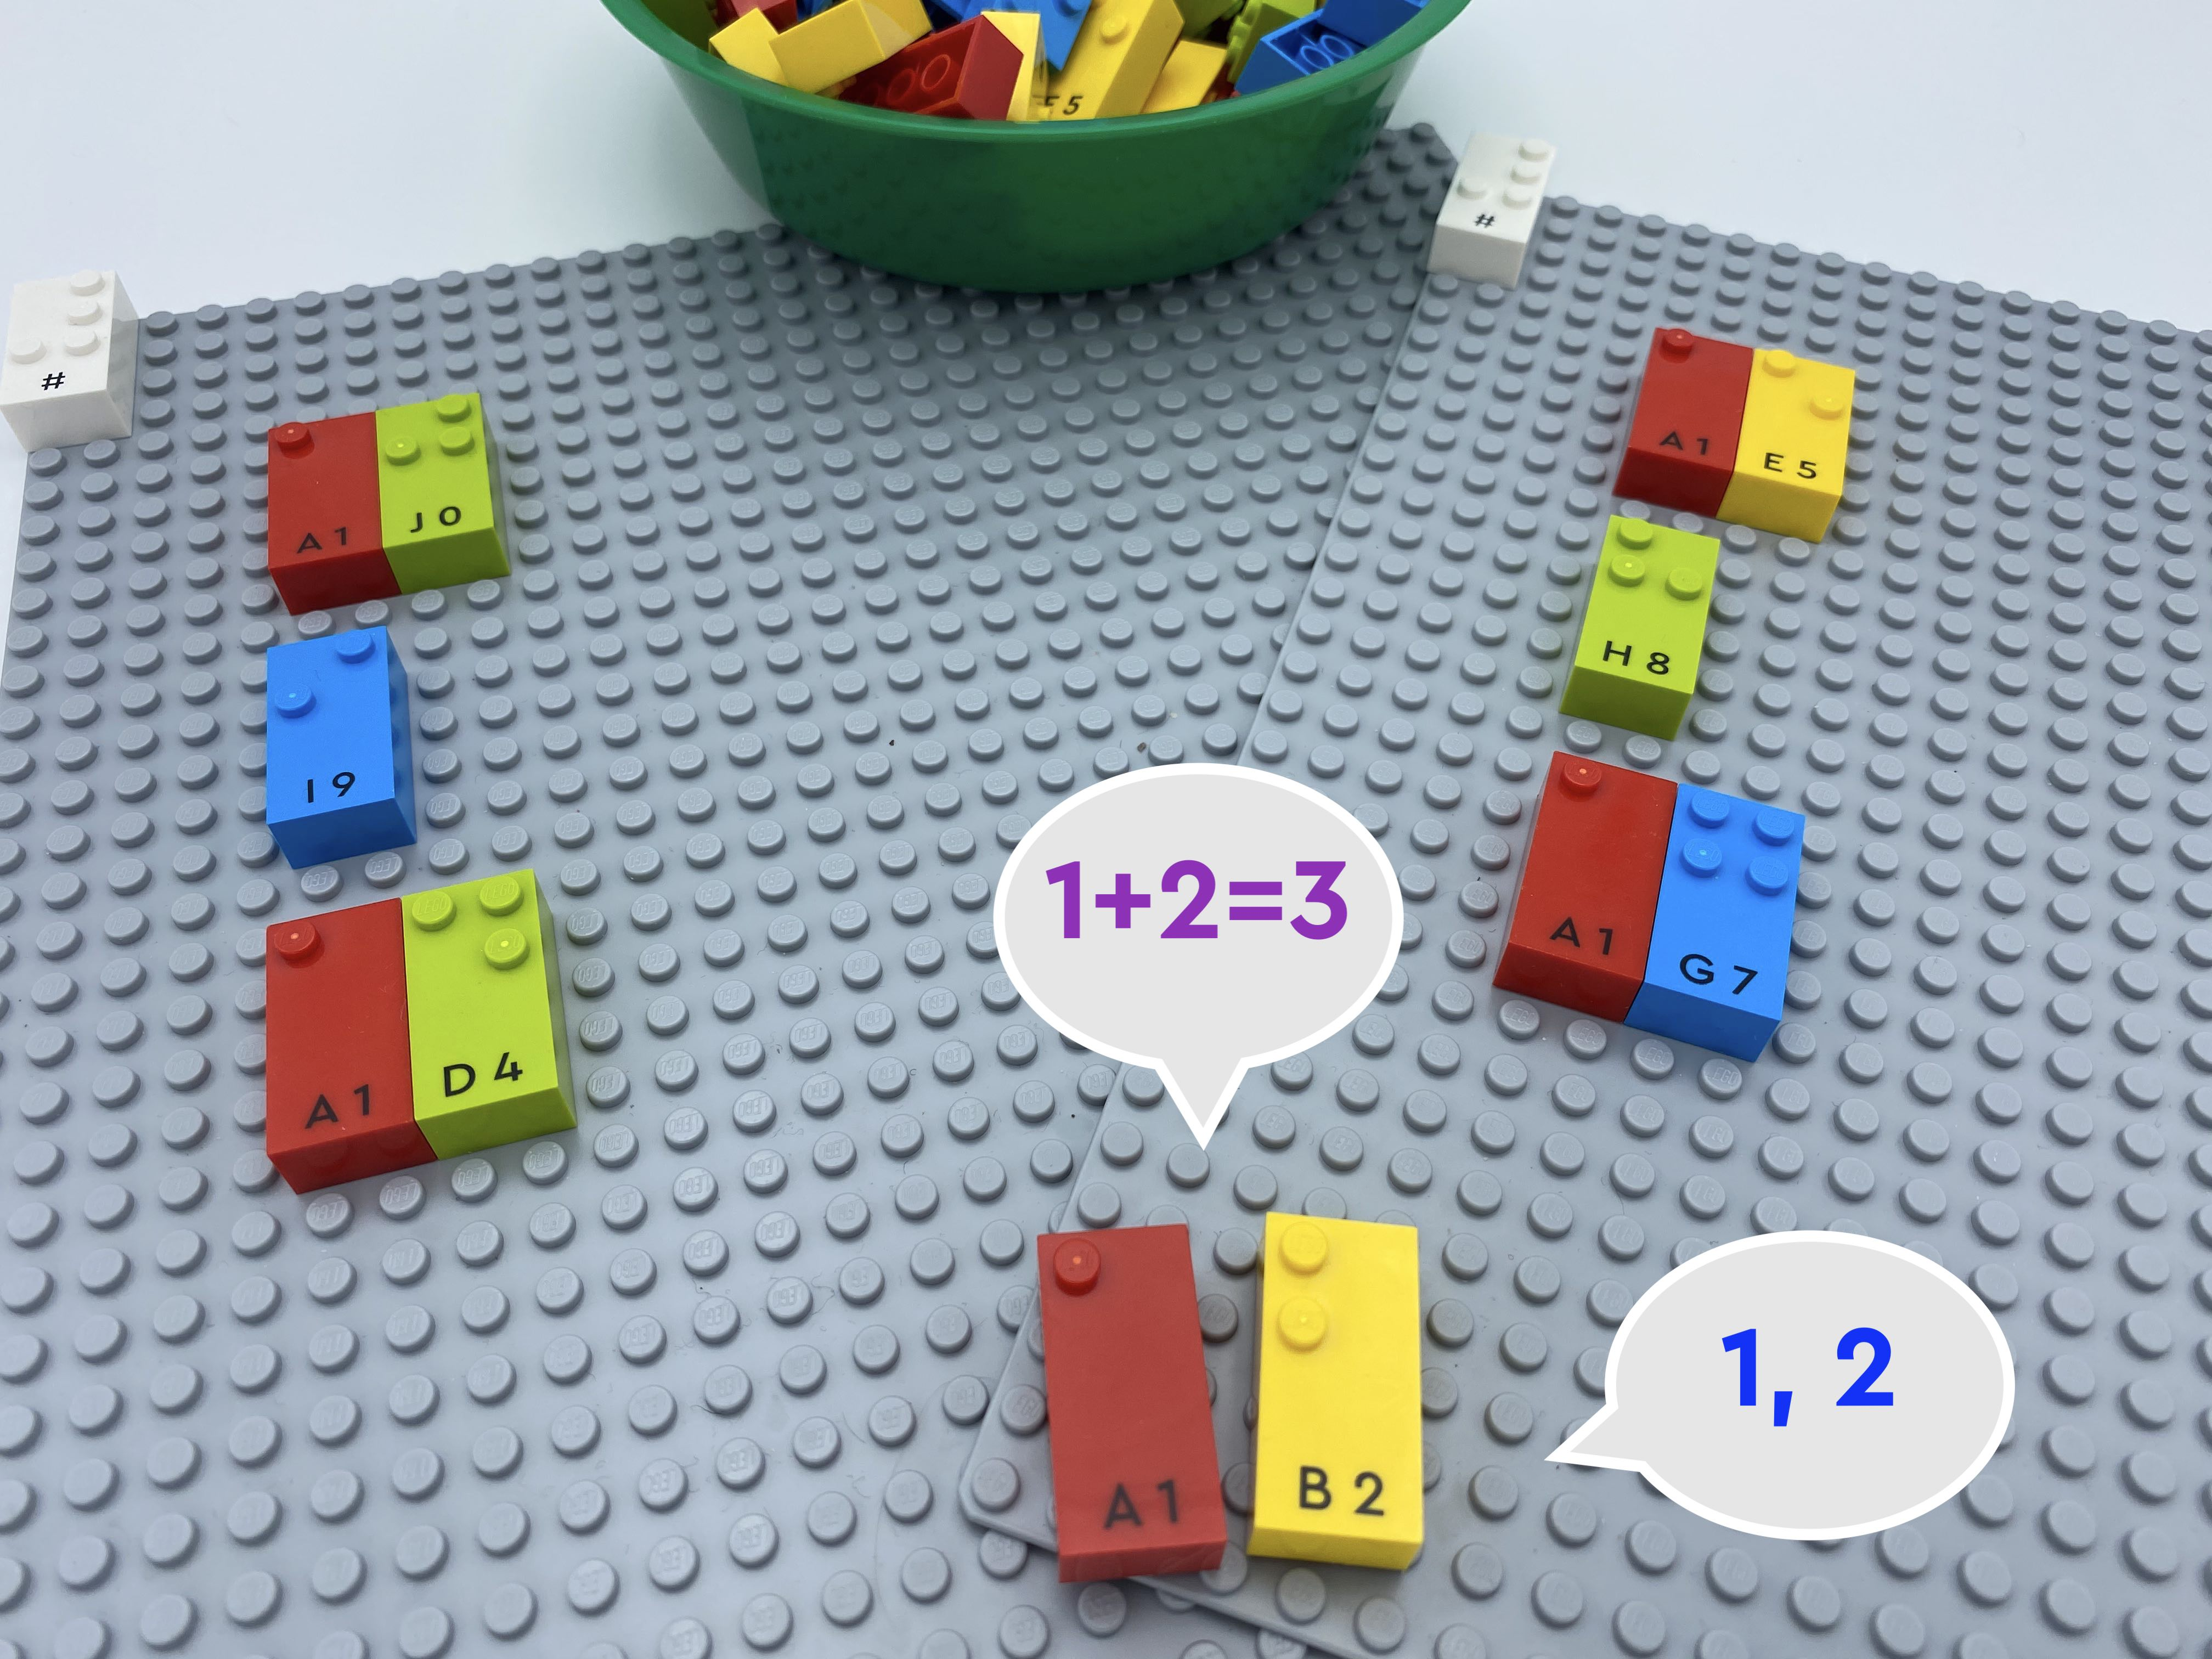 2 bingo cards: 10, 9, 14 and 15, 8, 17. Number bricks 1 and 2. 1 bubble speech says 1, 2 another says 1+2 =3